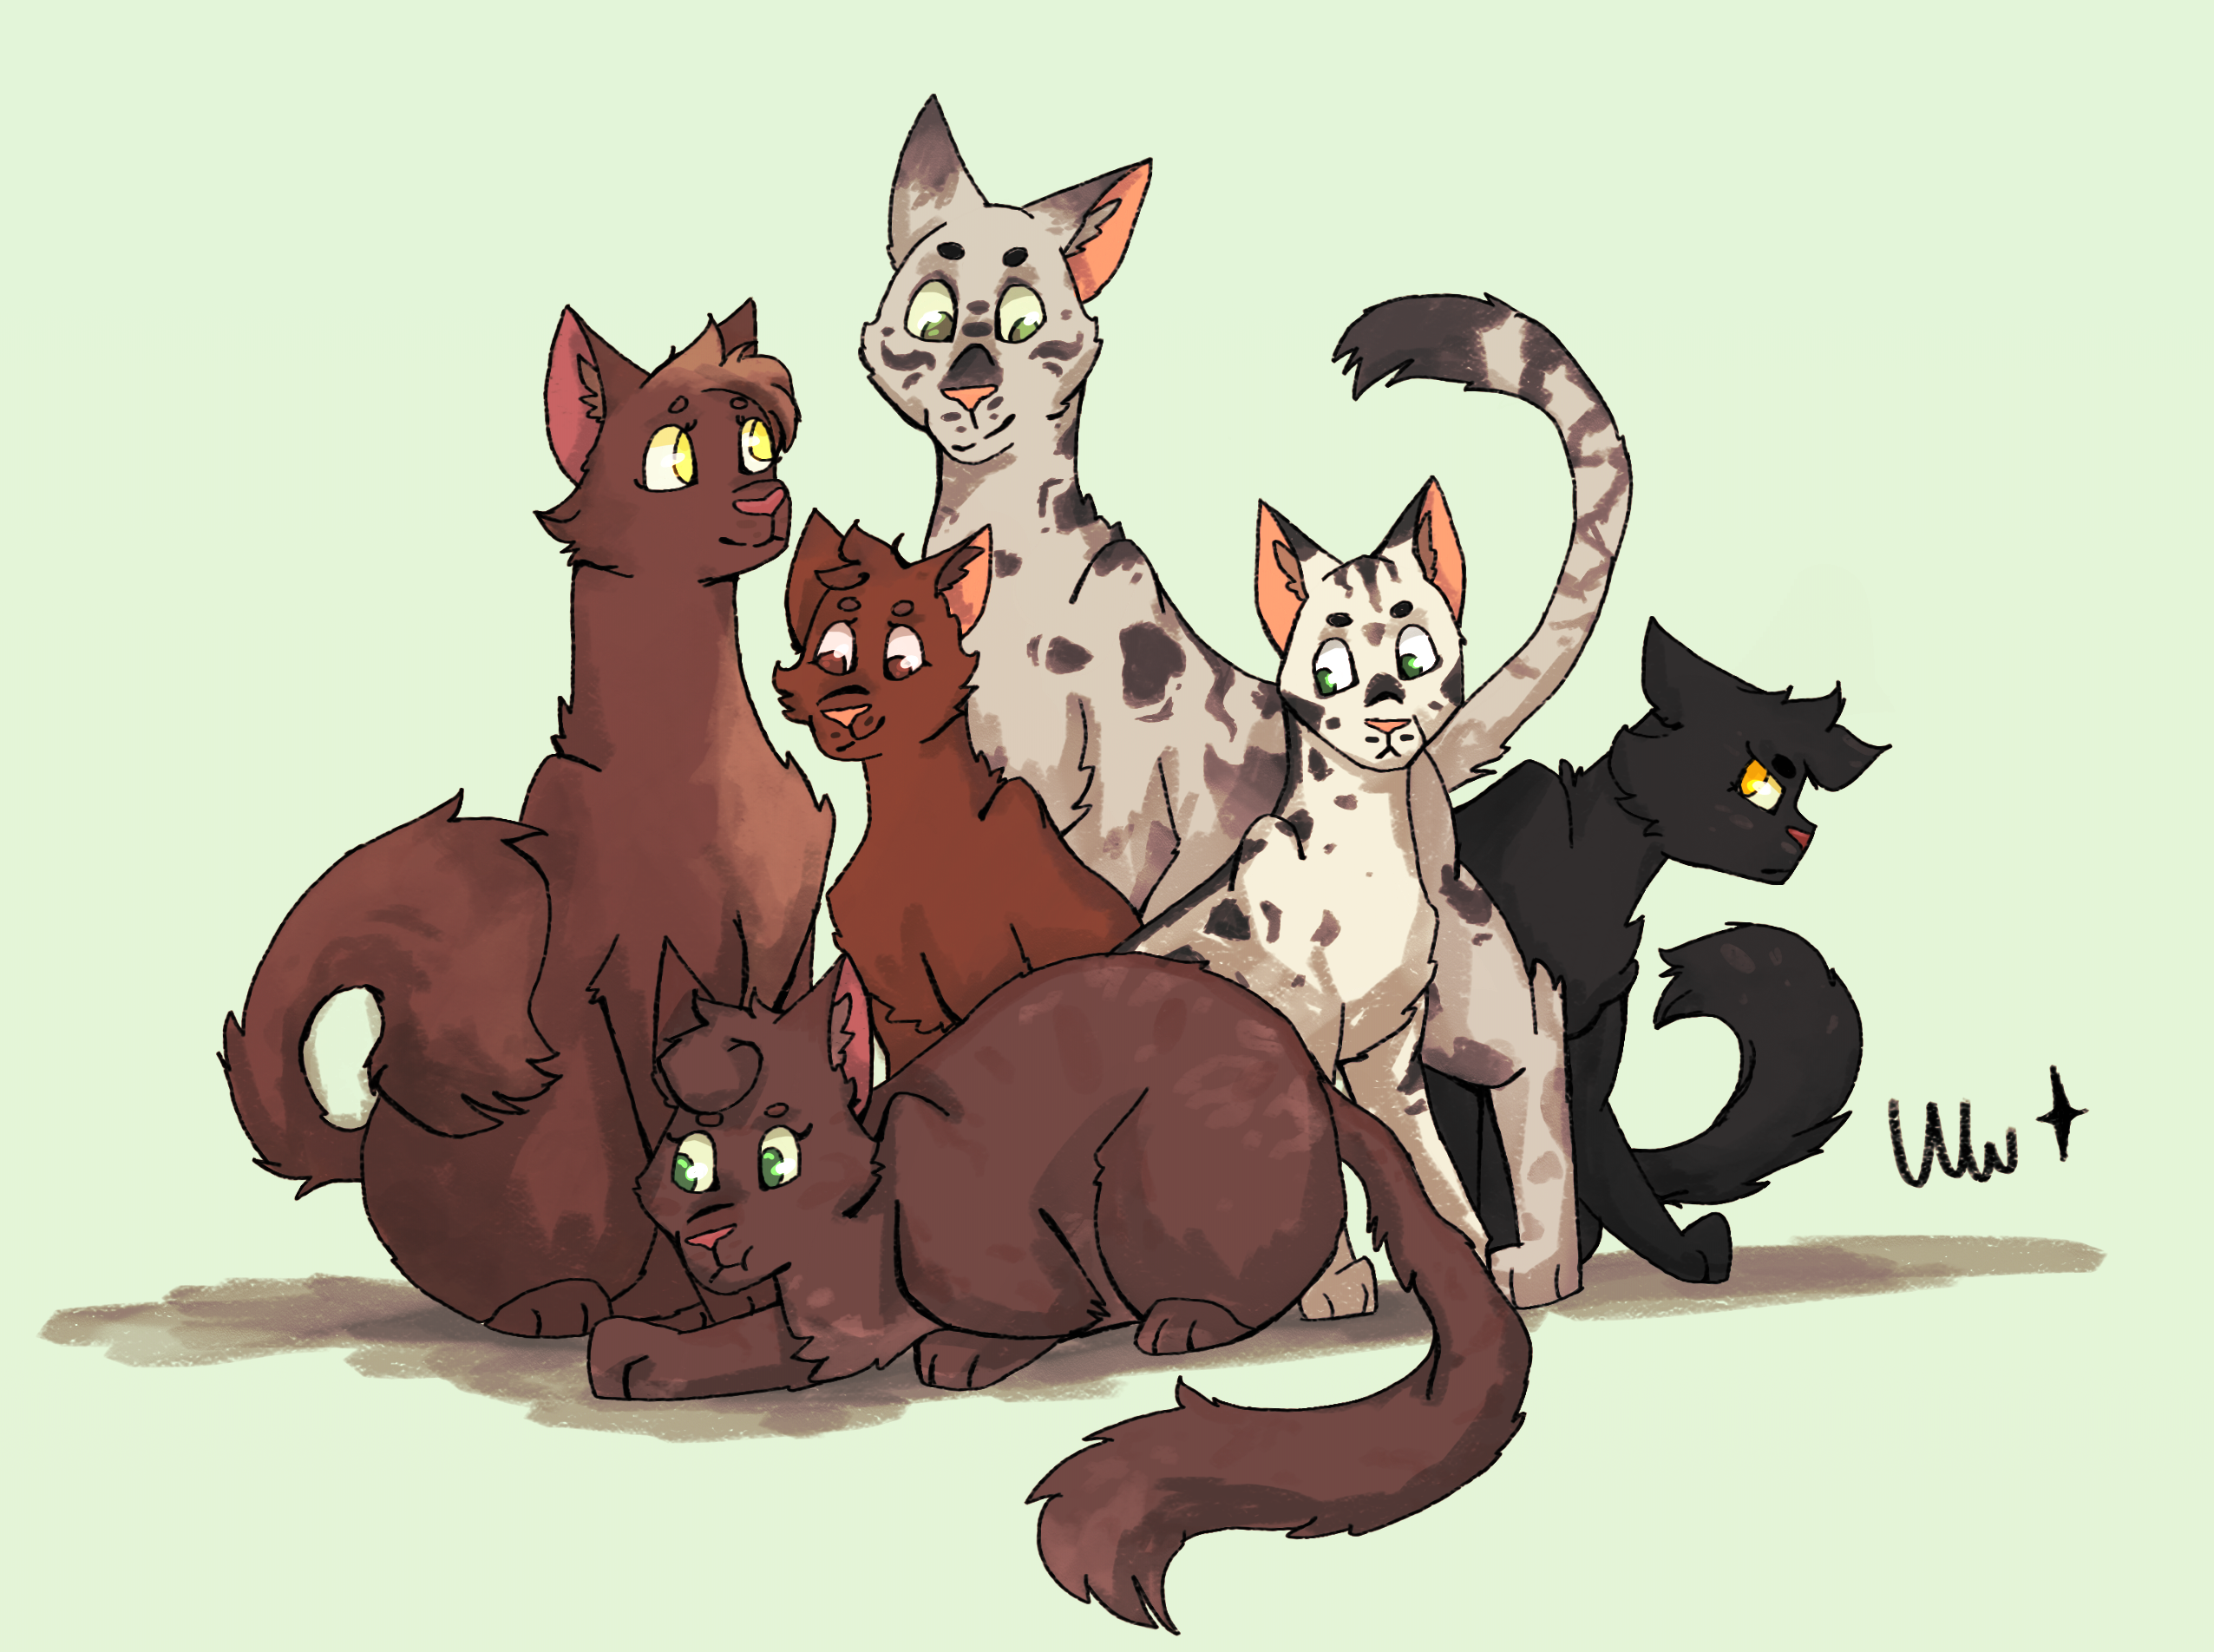 Family portrait// gift/contest entry for Mousestripe